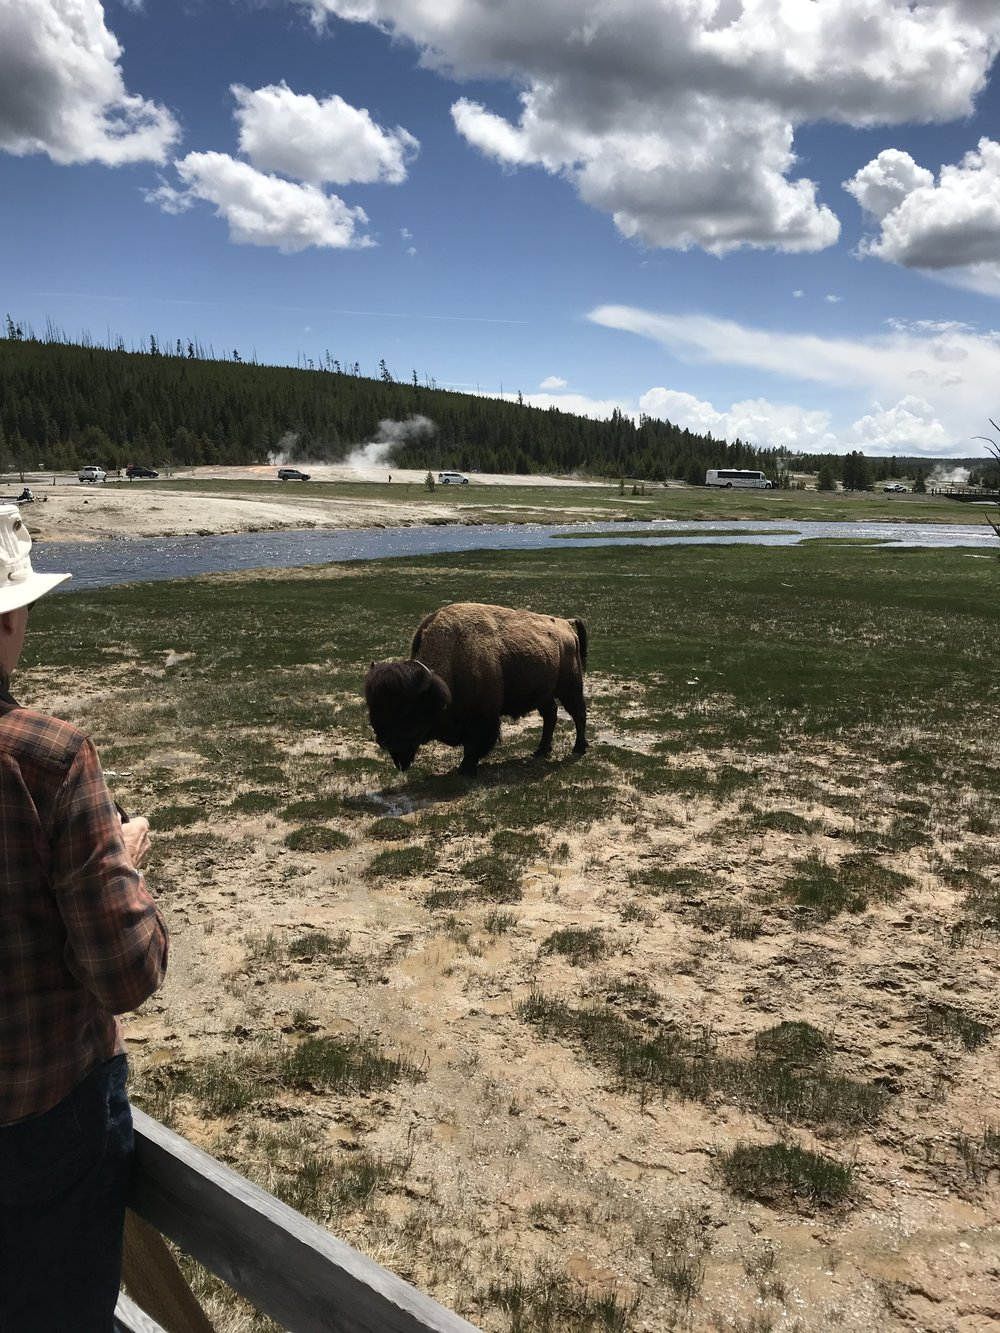 These majestic creatures were almost extinct but have made a comeback.  This particular bison was getting close to the boardwalk. A safety tip, do not approach these animals. Give them the distance that is required.